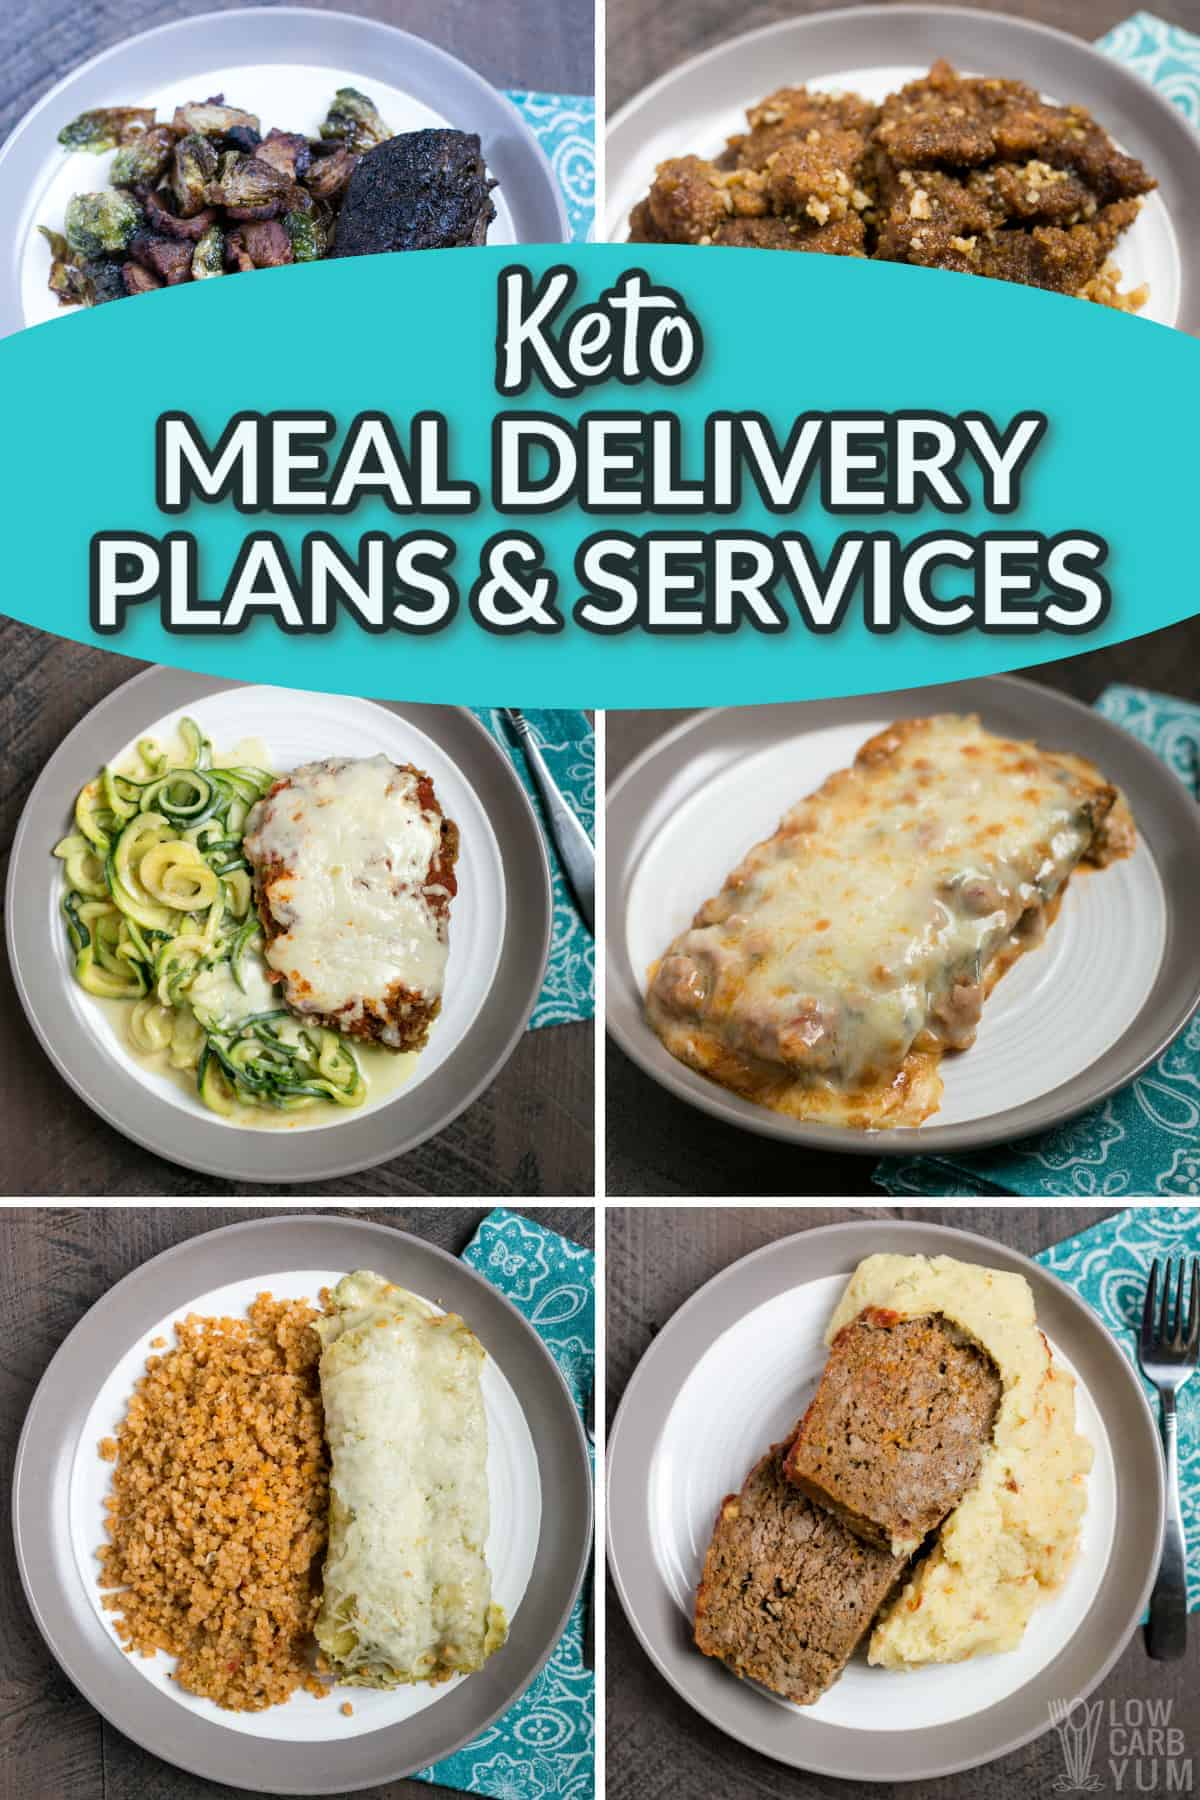 keto meal delivery plans and services cover image